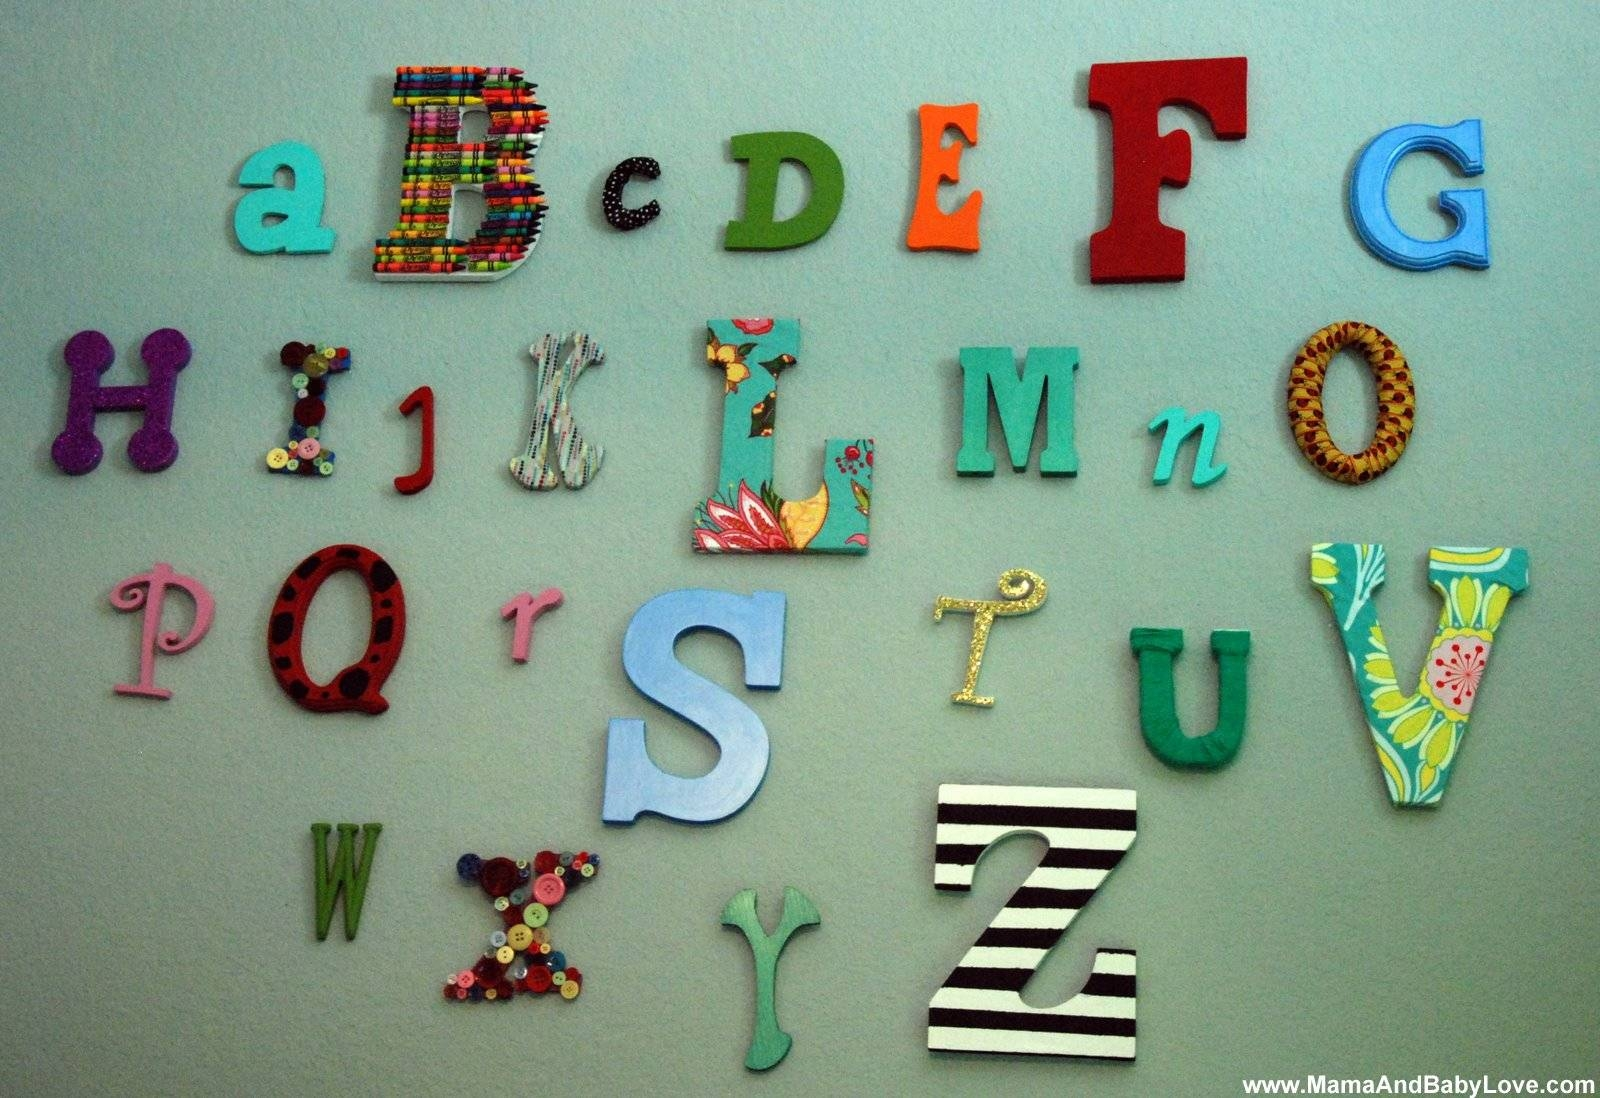 Mab Test: Abc Playroom Wall Art With Current Playroom Wall Art (View 16 of 30)